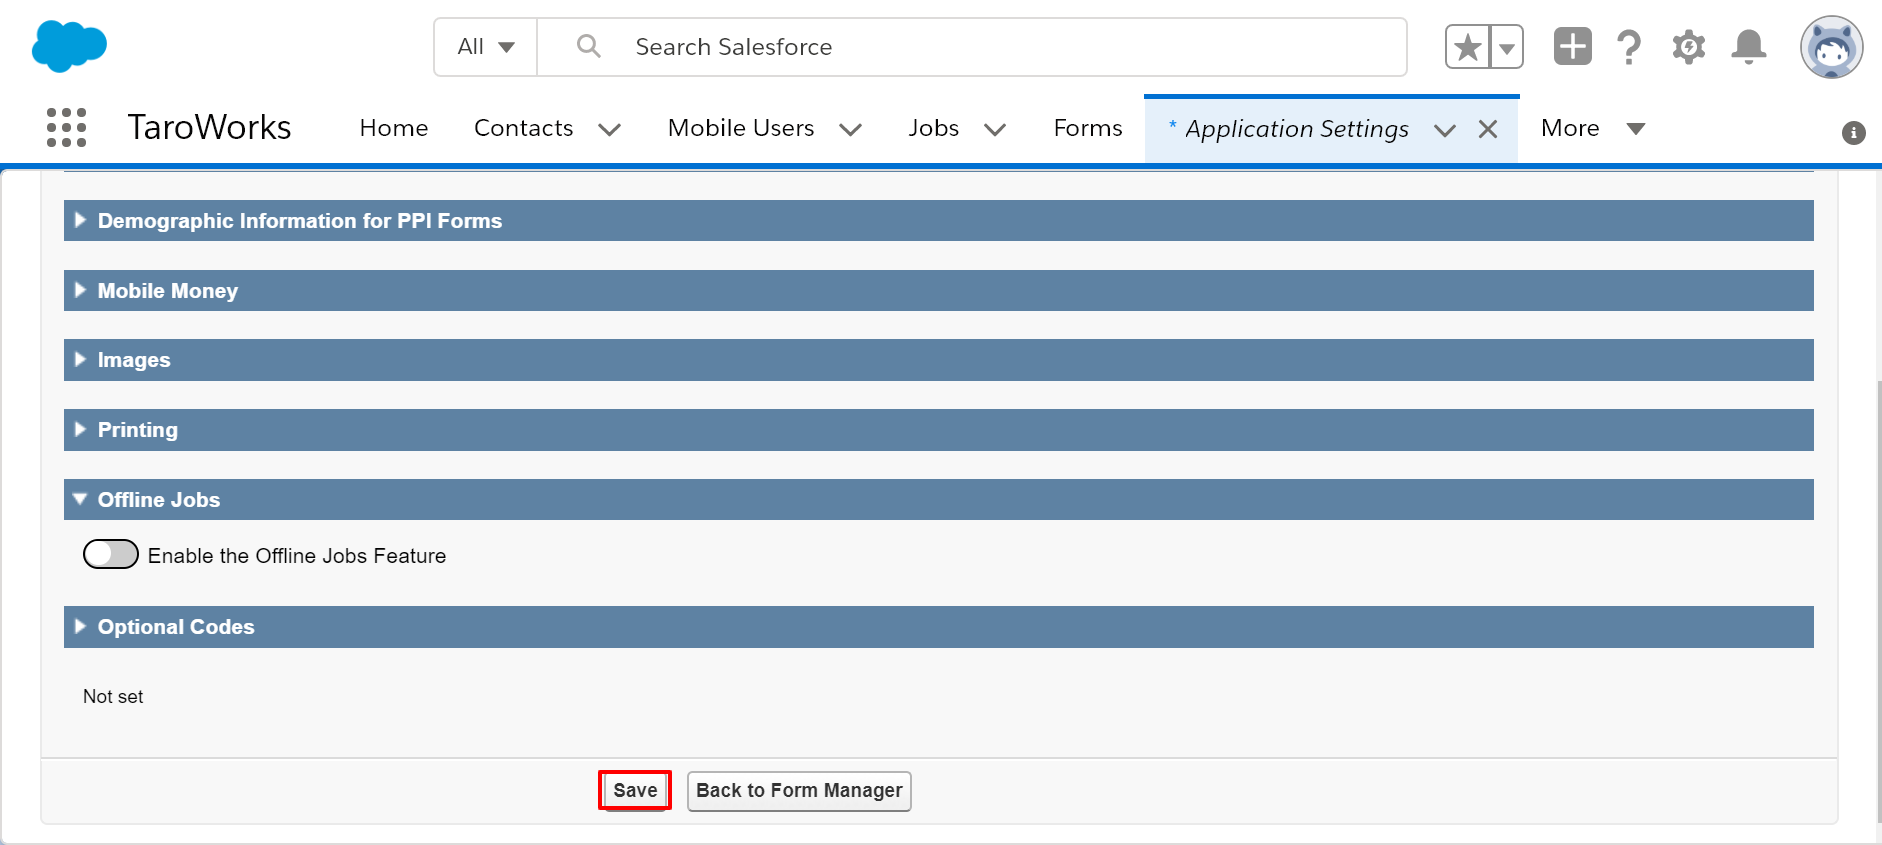 AwesomeScreenshot-Application-Settings-Salesforce-2019-07-03-03-07-59.png